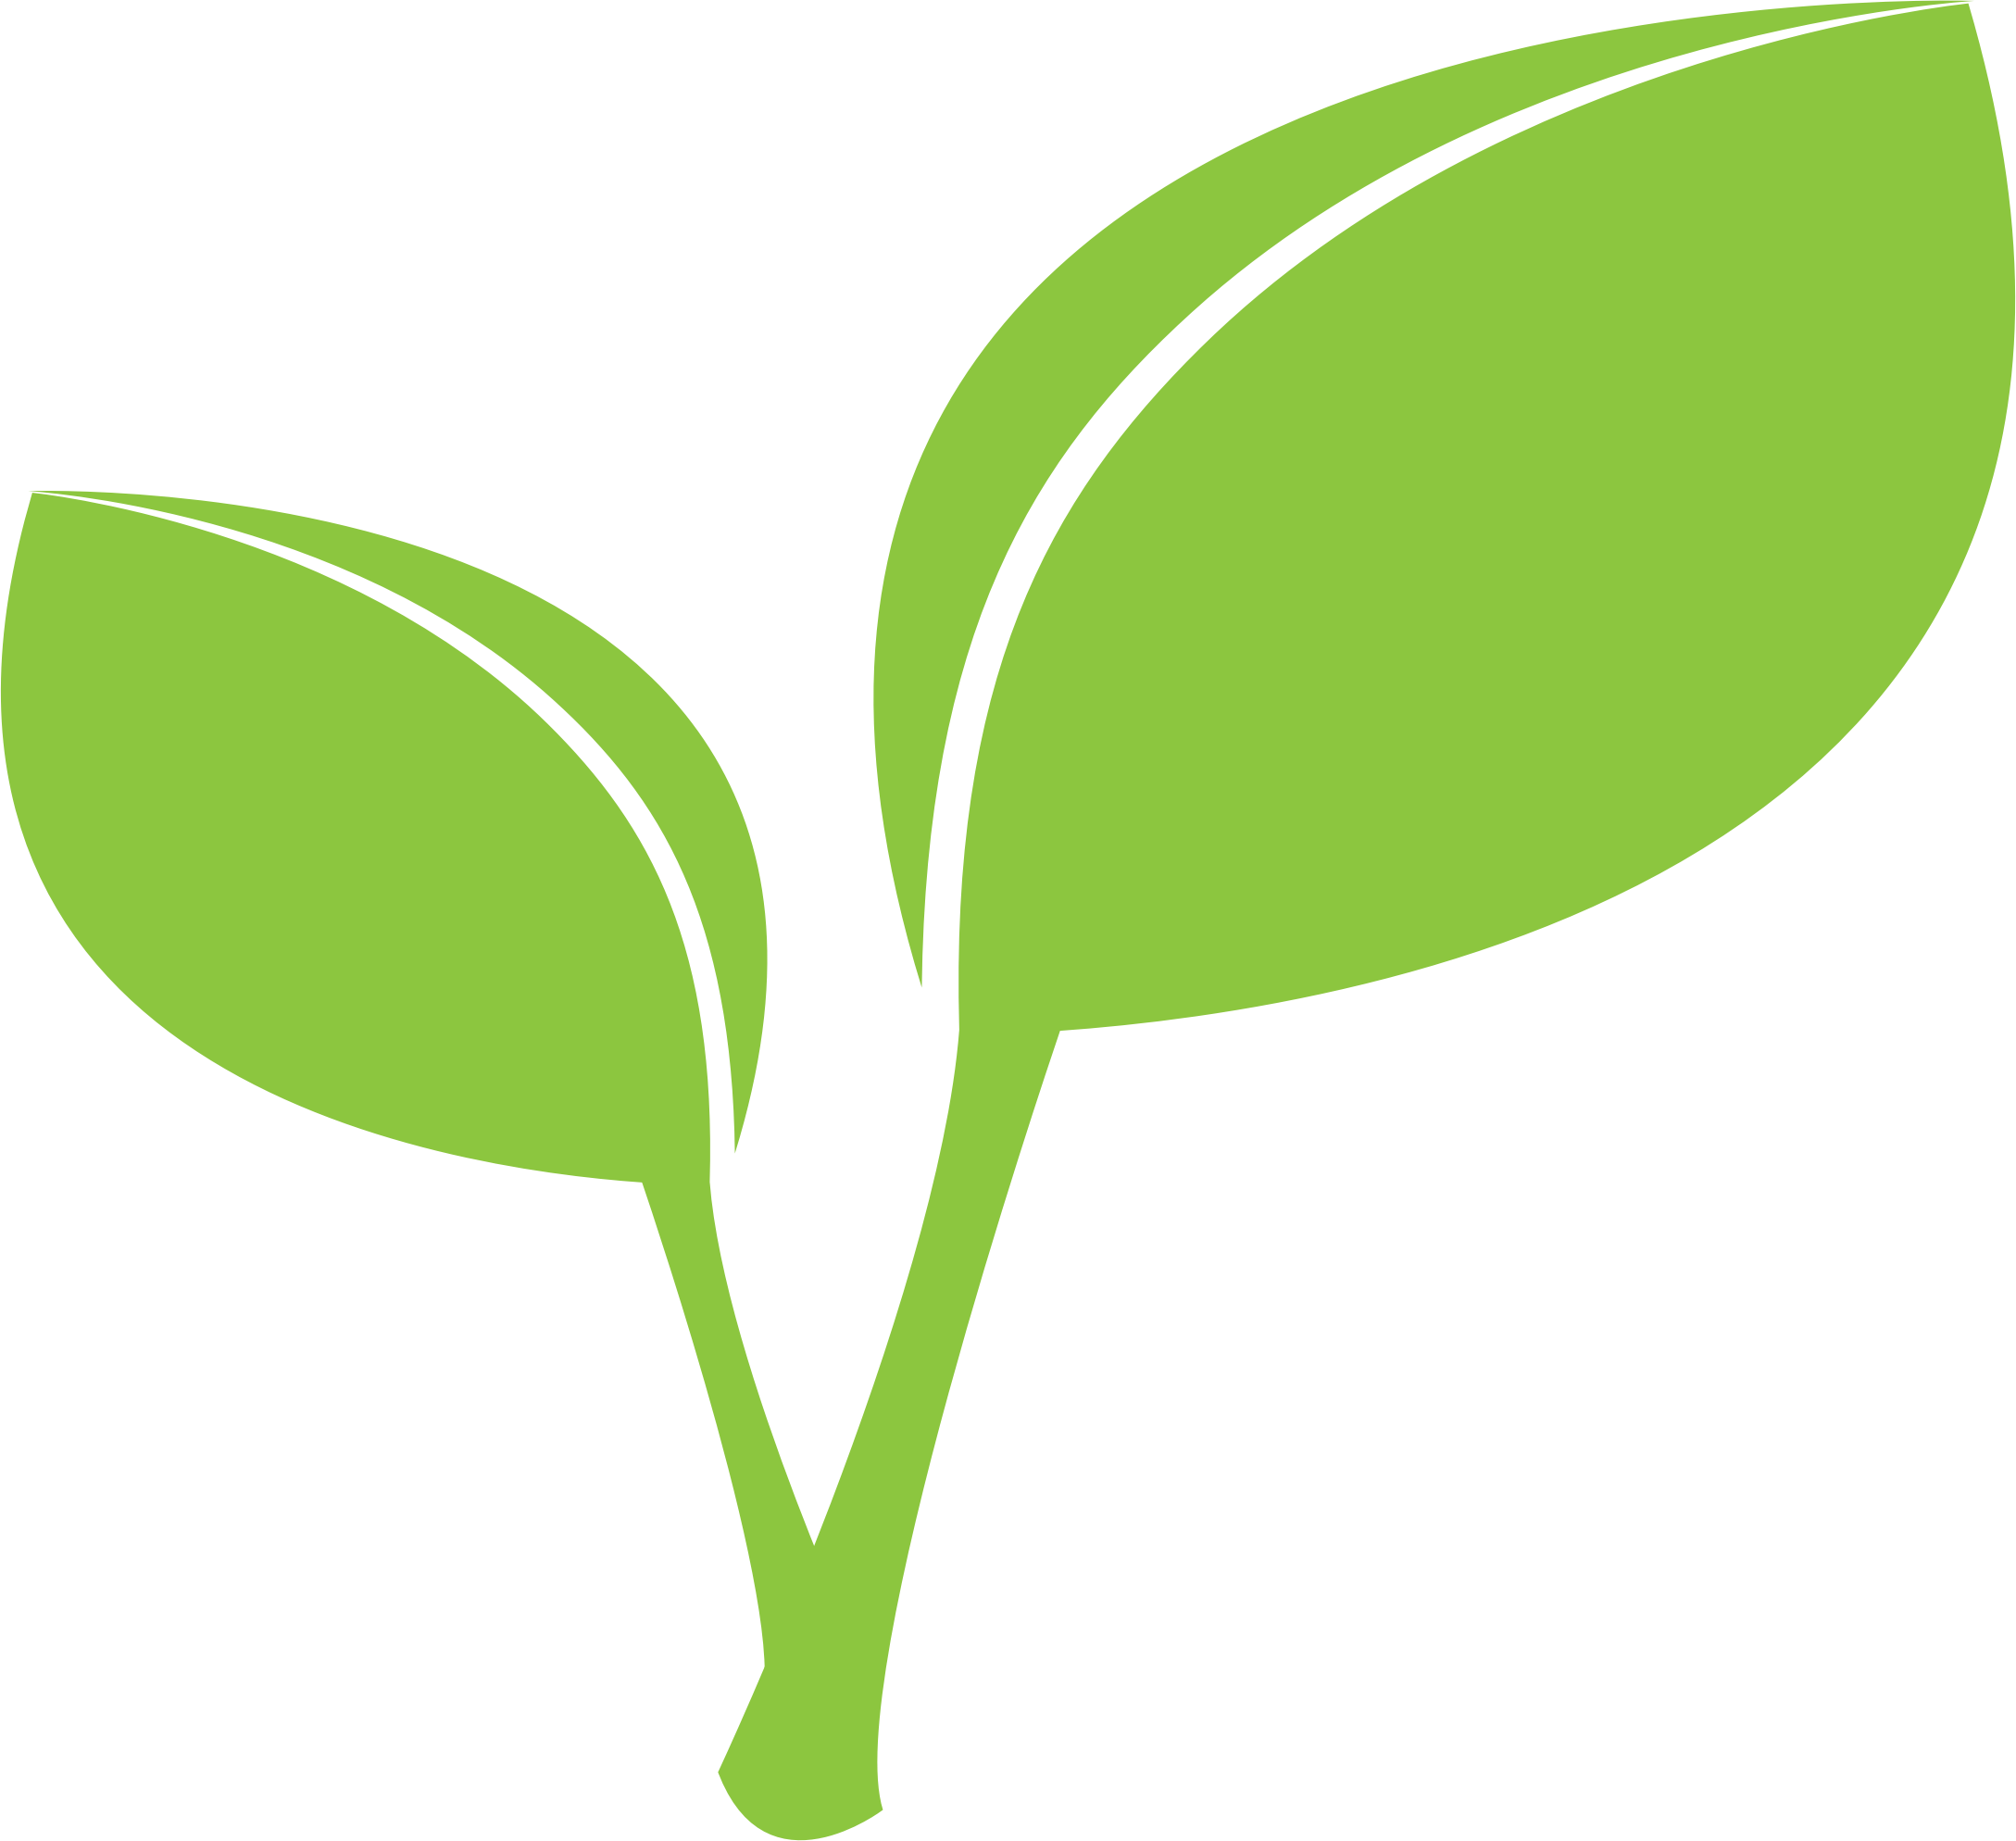 Leaf clipart icon. Eucalyptus free download best